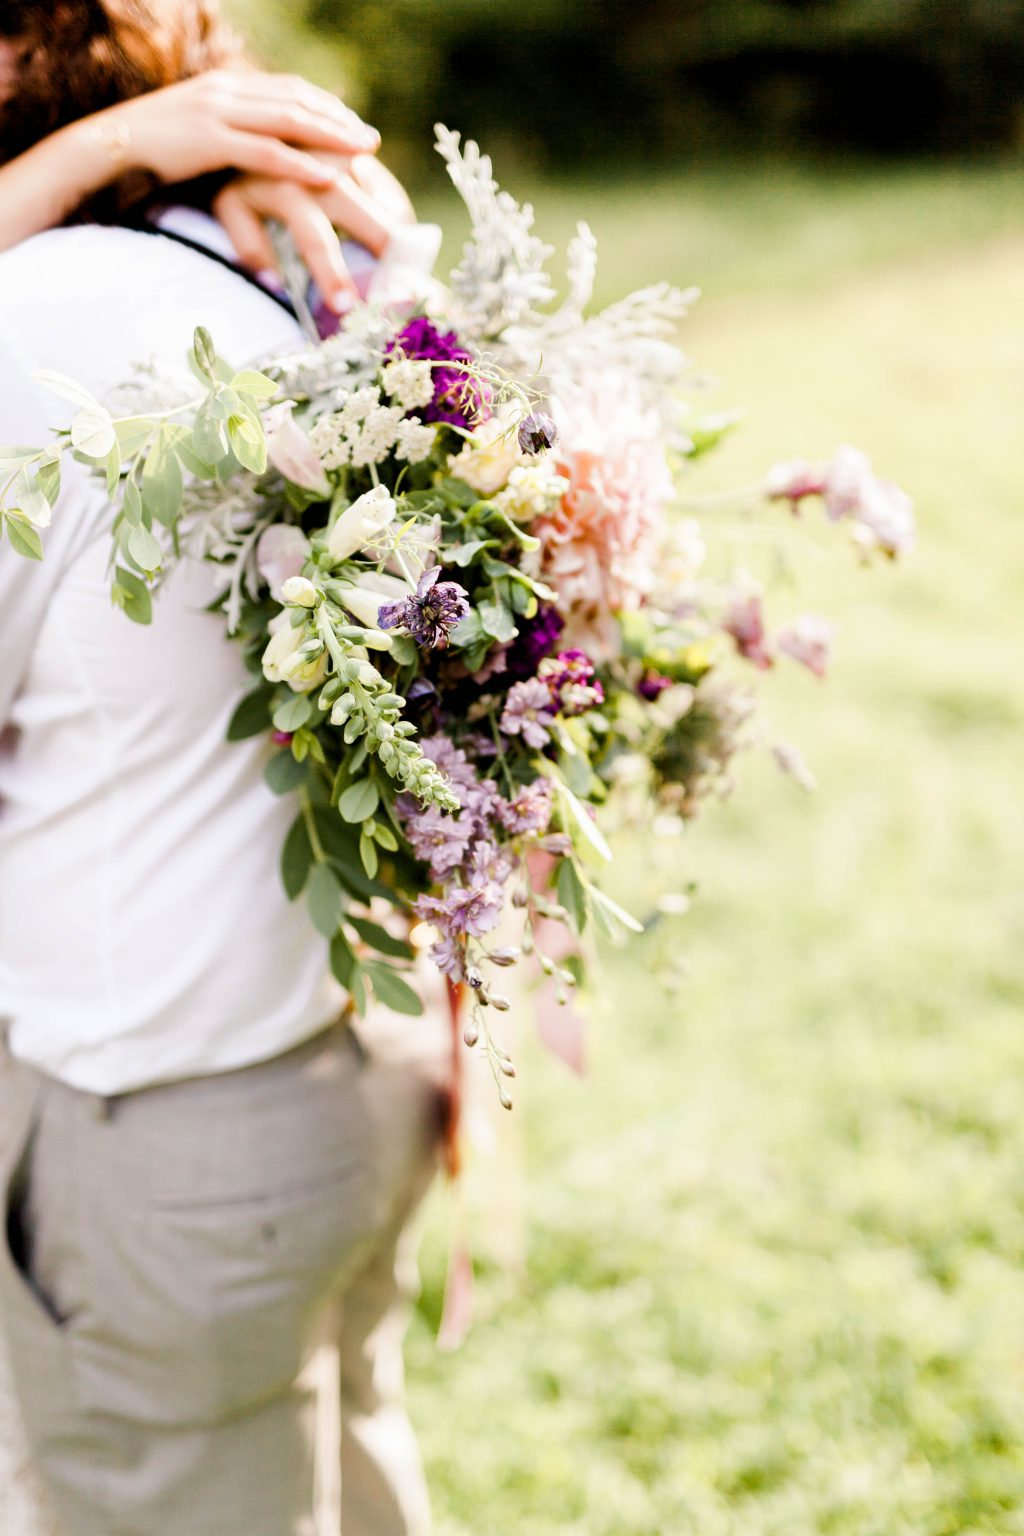 awbury-arboretum-wedding-DIY-boho-summer-haley-richter-photography-178